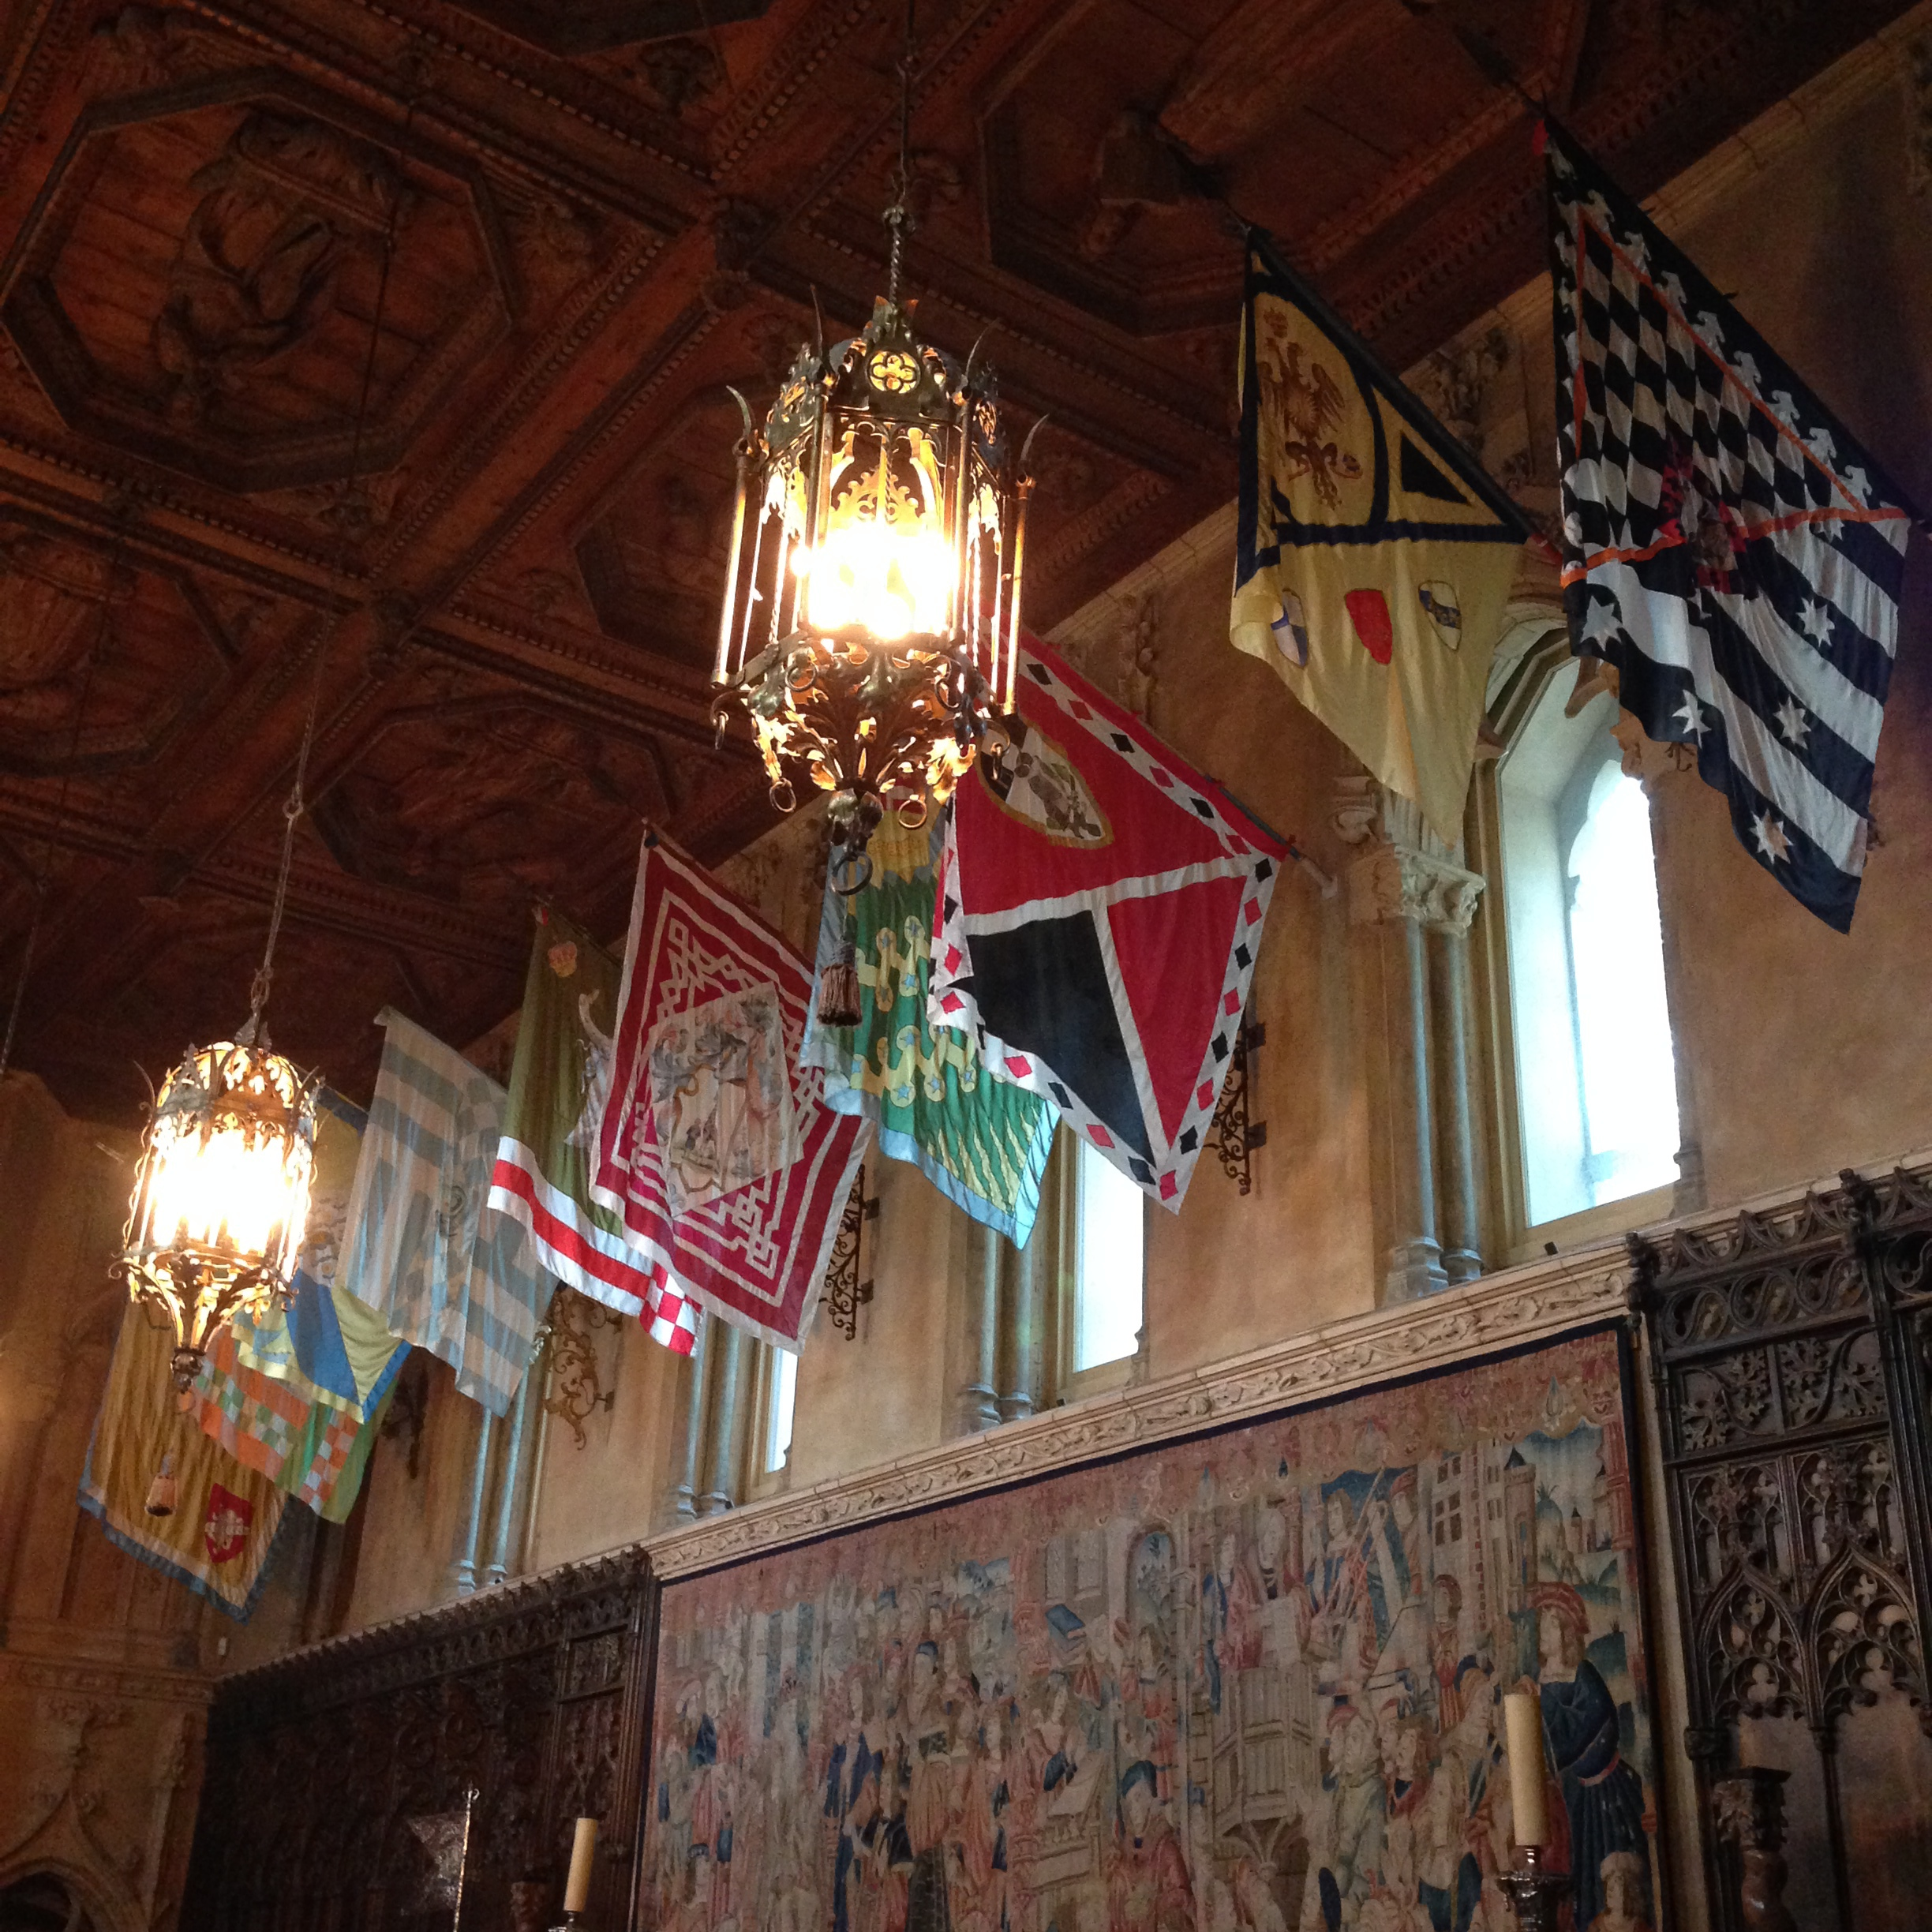 They styled the ballroom of Hogwarts in the Harry Potter films based on this room.